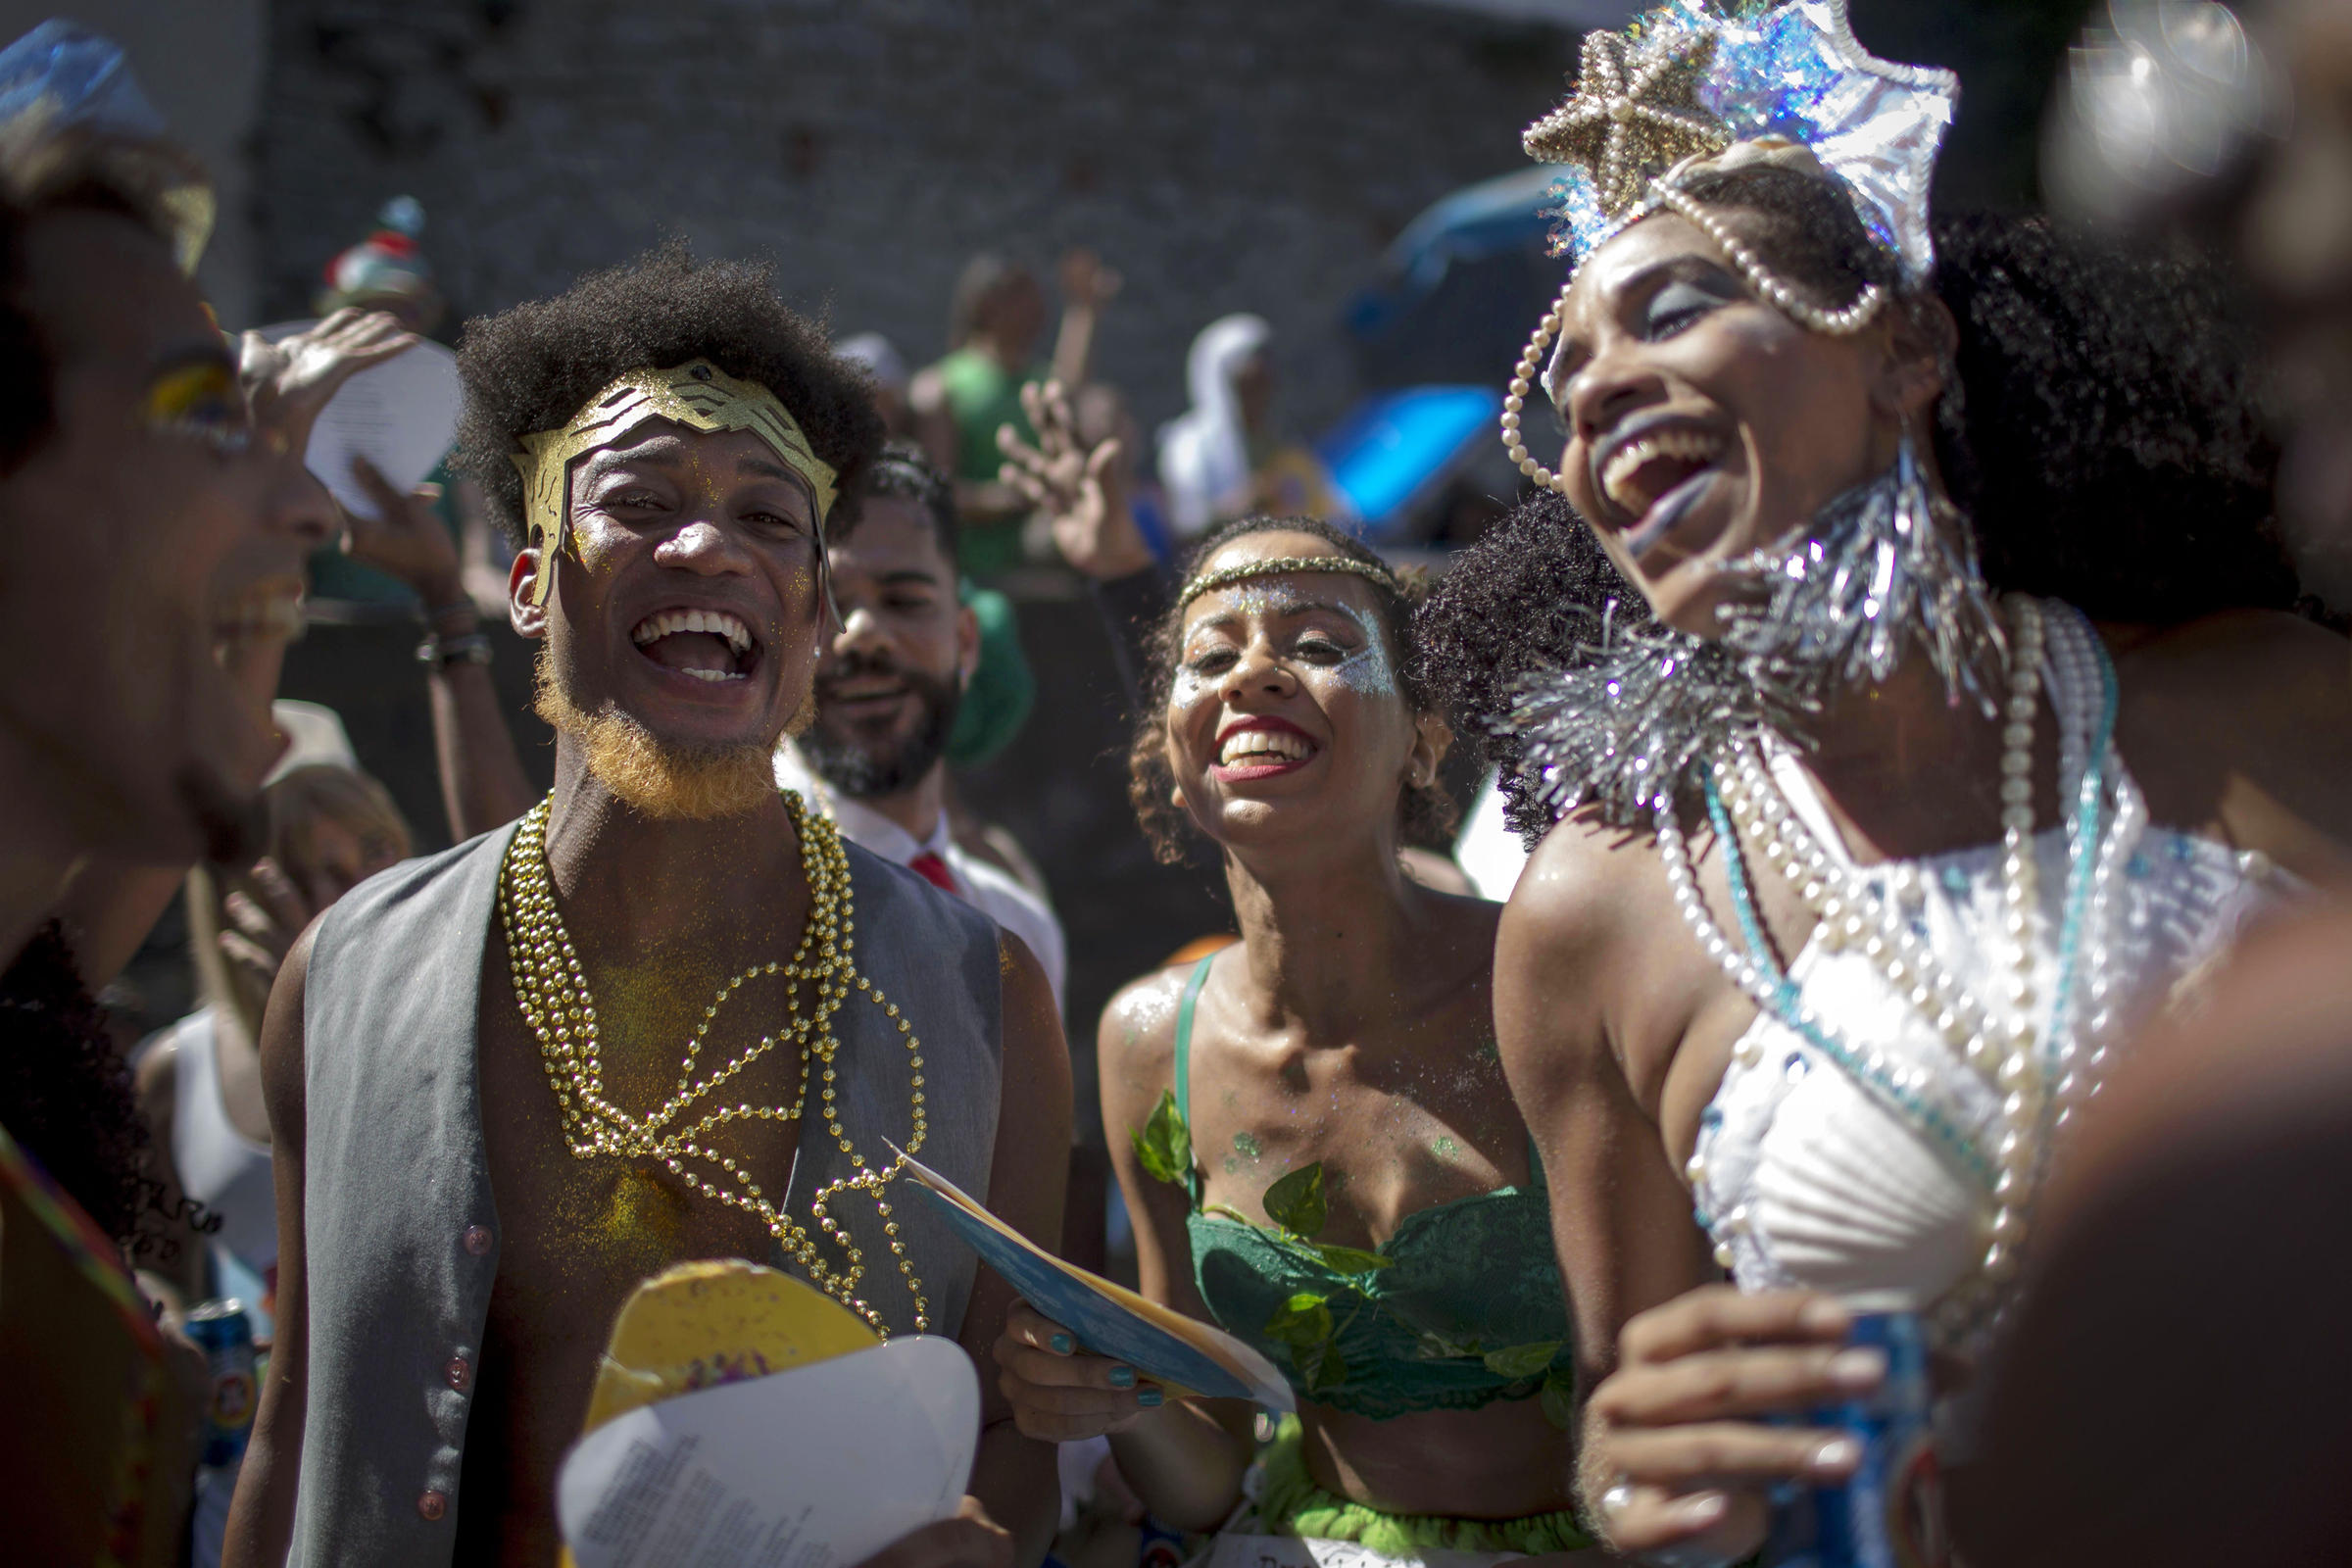 Violence during Rio carnival 'unacceptable': minister